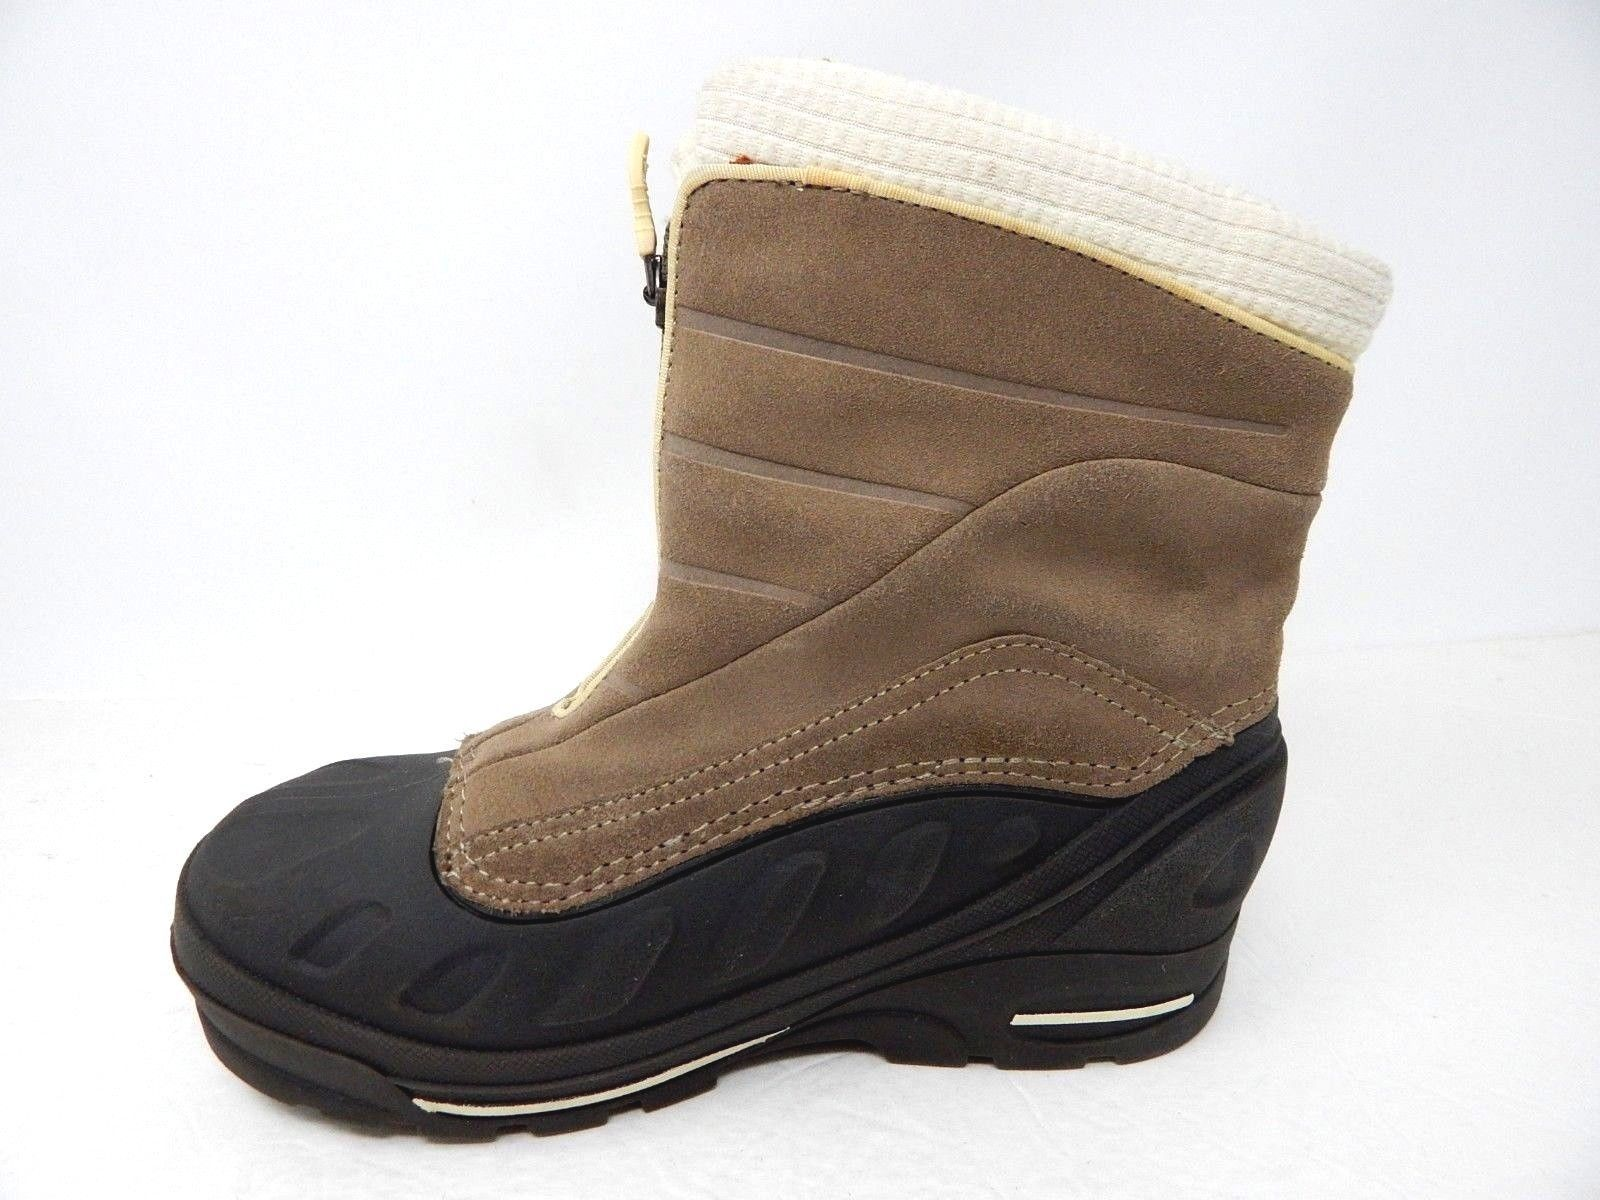 75ecee4c70e Womens Columbia Sierra Flurry Winter,Snow and 49 similar items